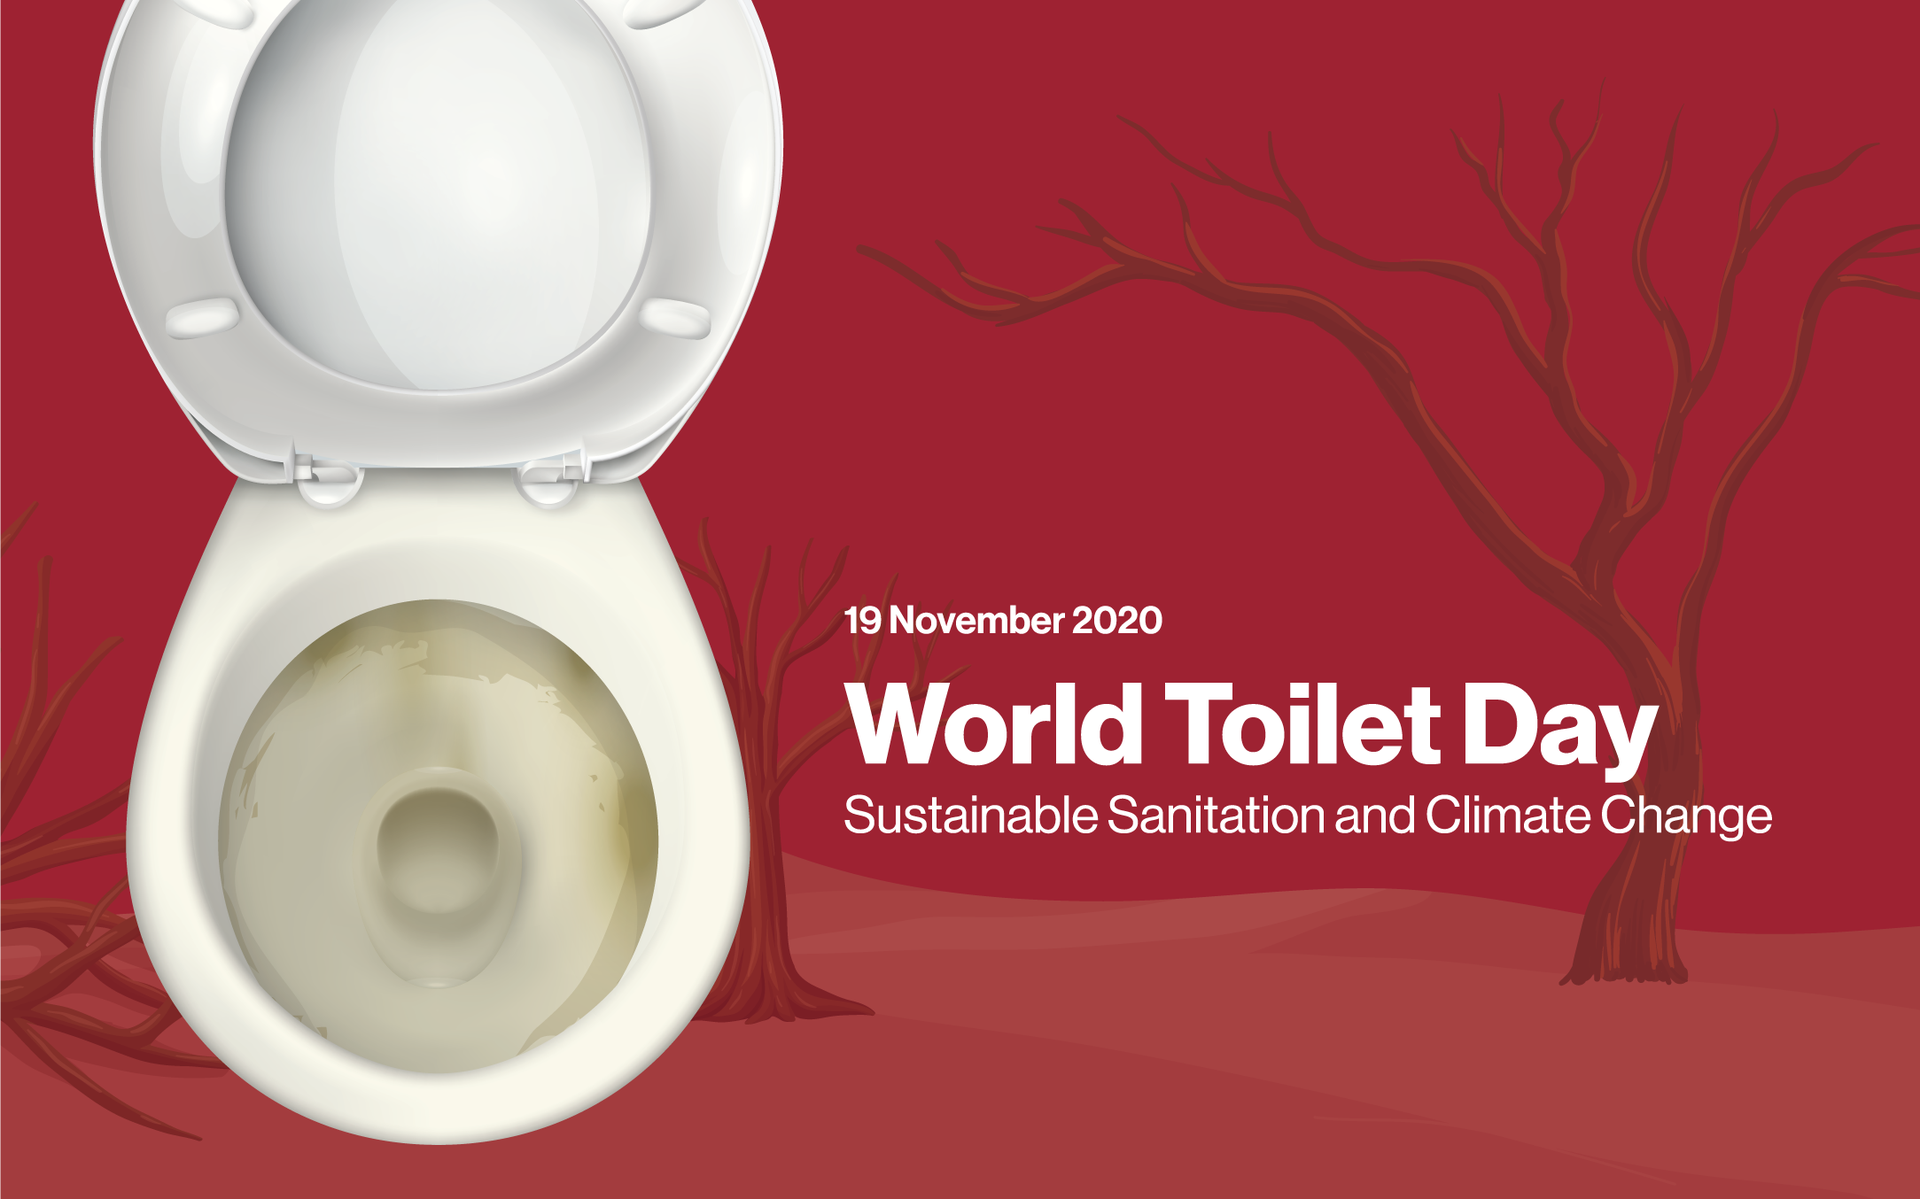 Today is World Toilet Day!